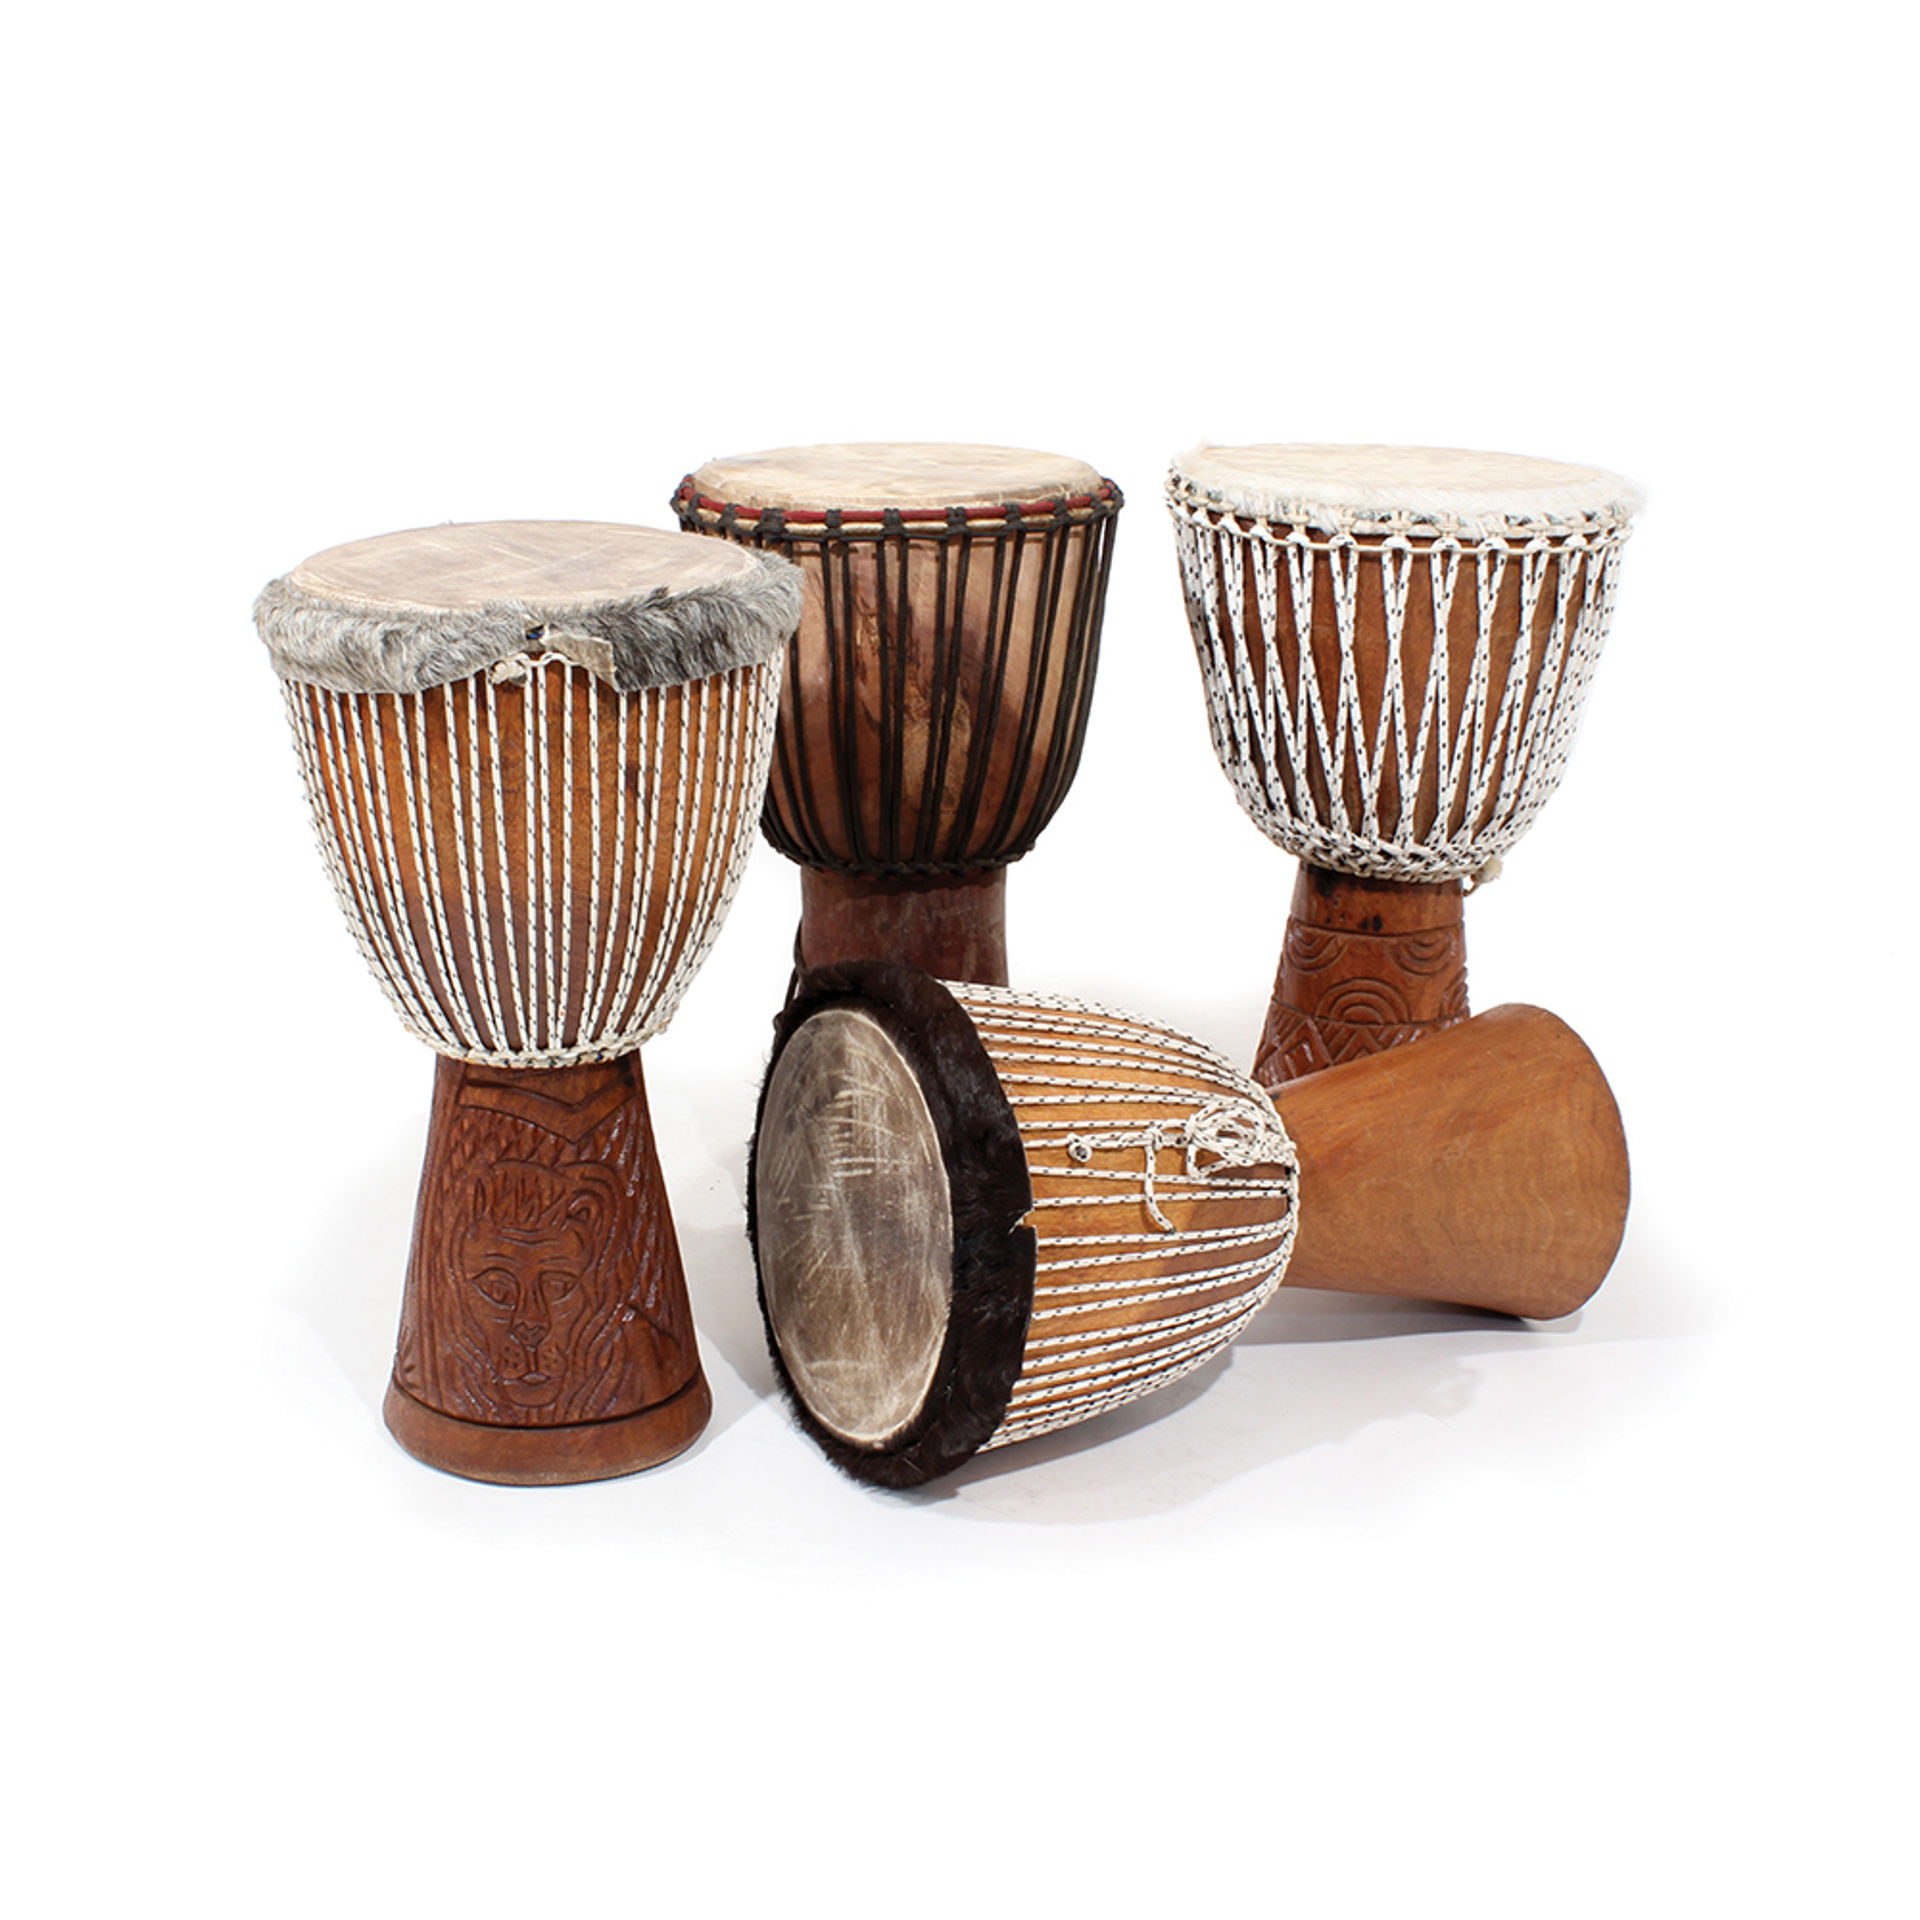 Djembe Drum Full Size, various types